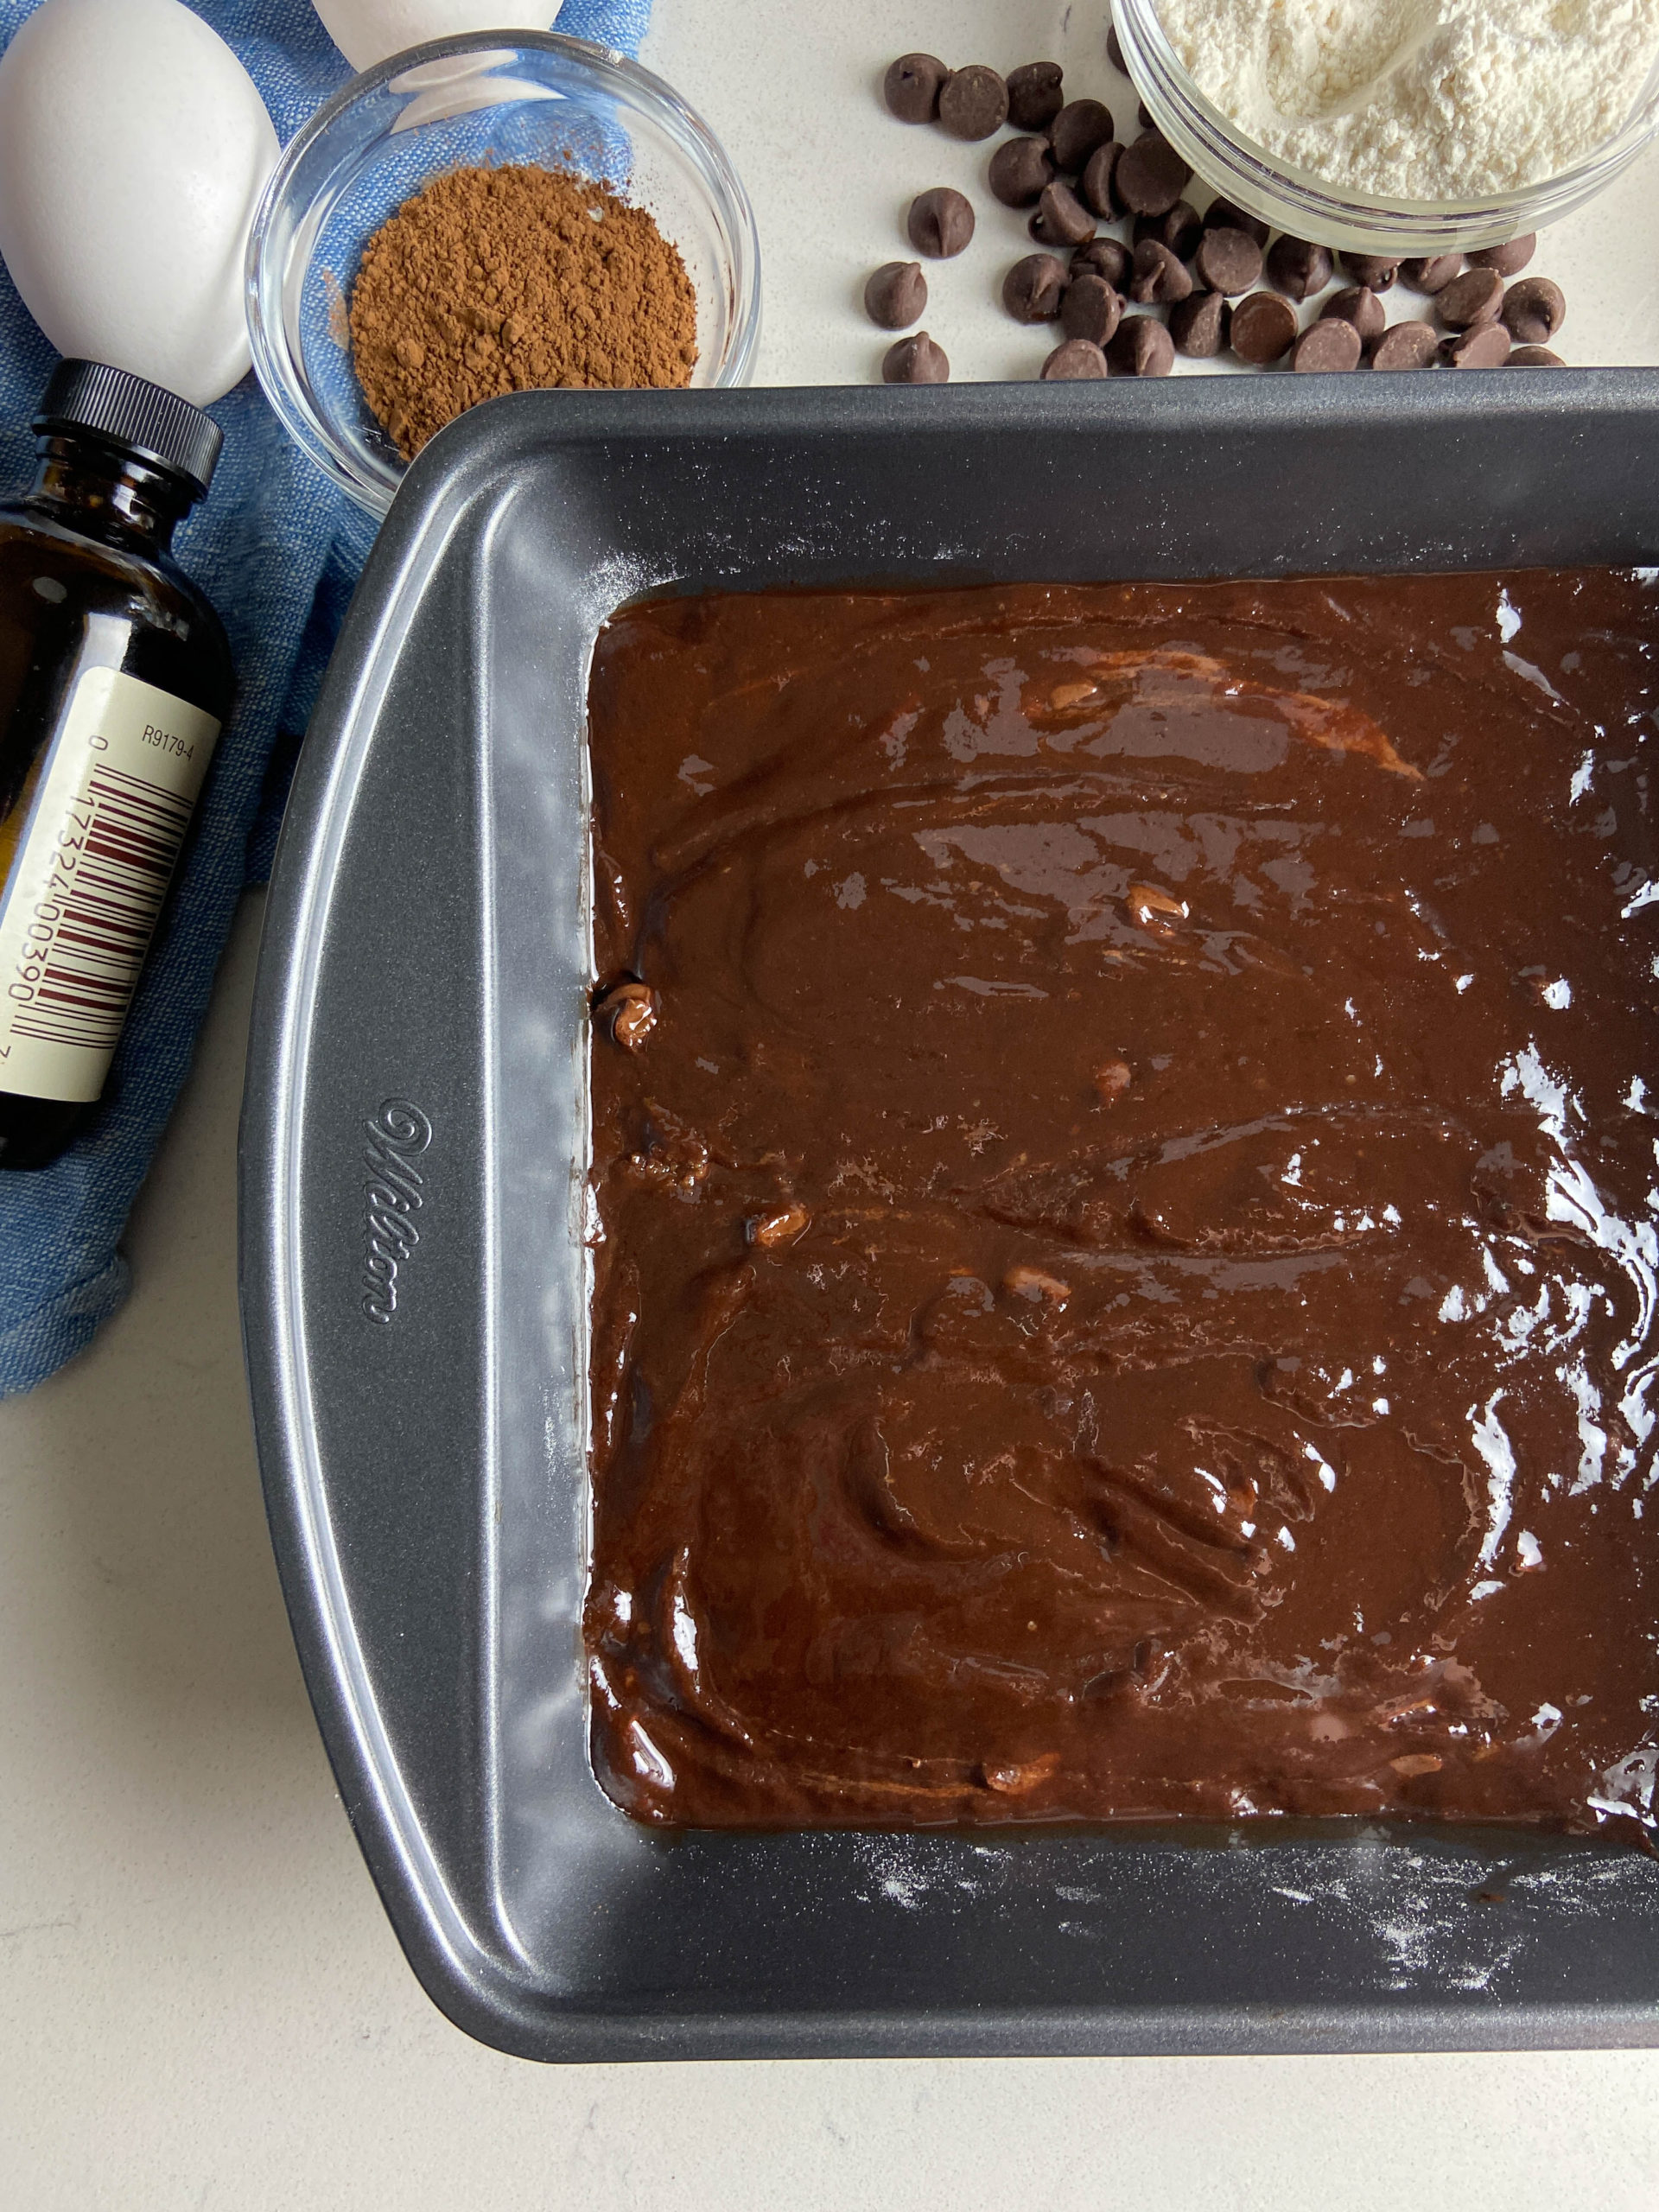 Raw brownie batter in a baking dish.